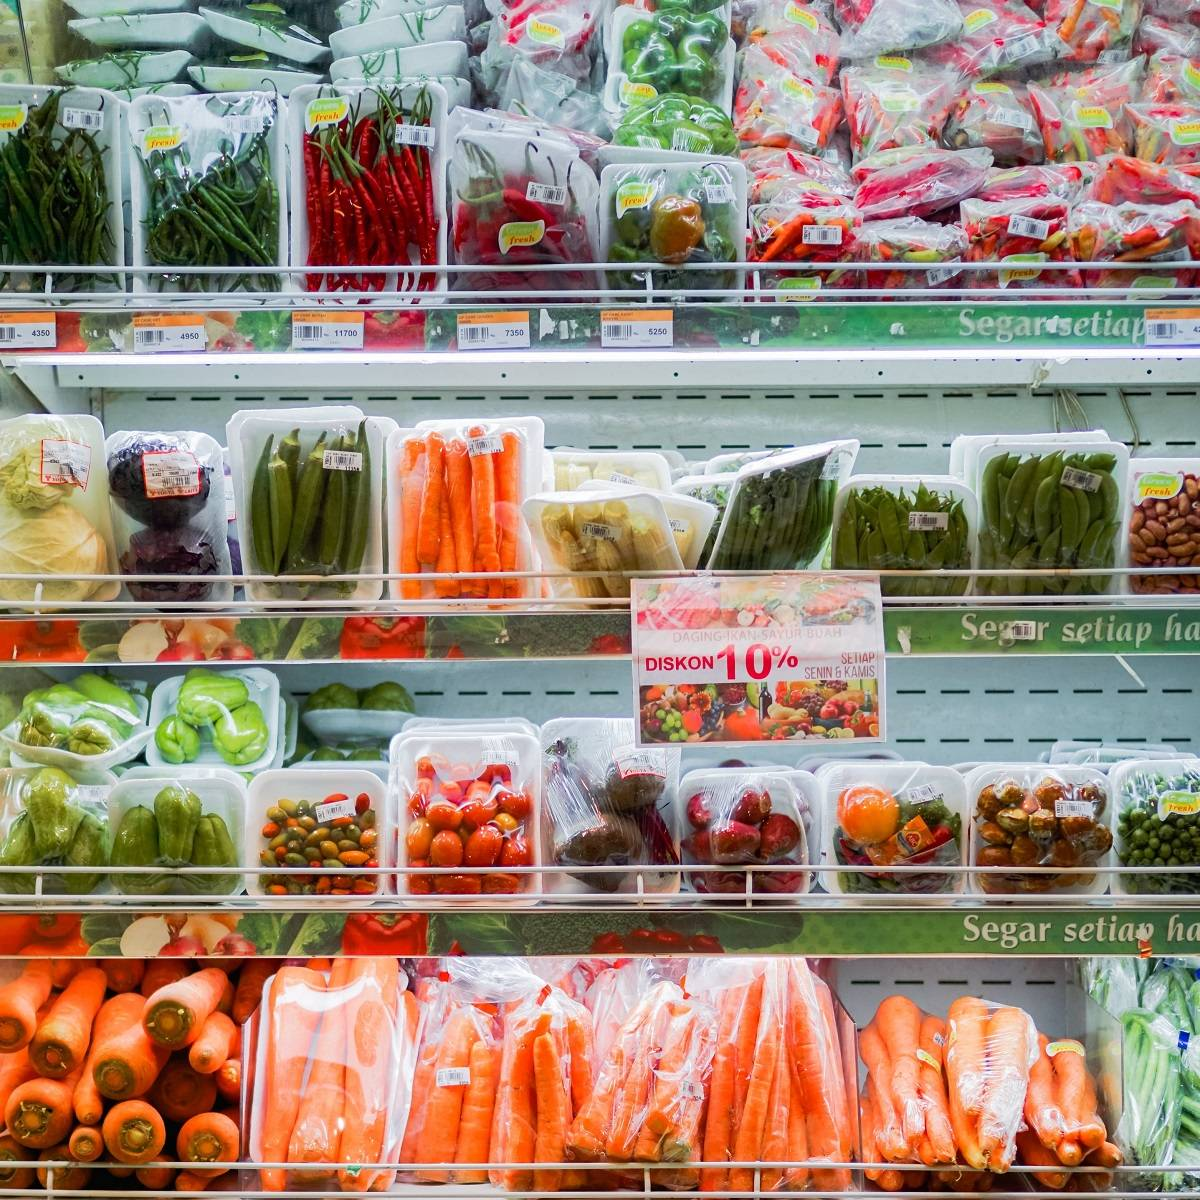 Various vegetables wrapped in plastic packaging in a supermarket. To refuse single use plastics such as needless packaging are the first steps in living plastic free.